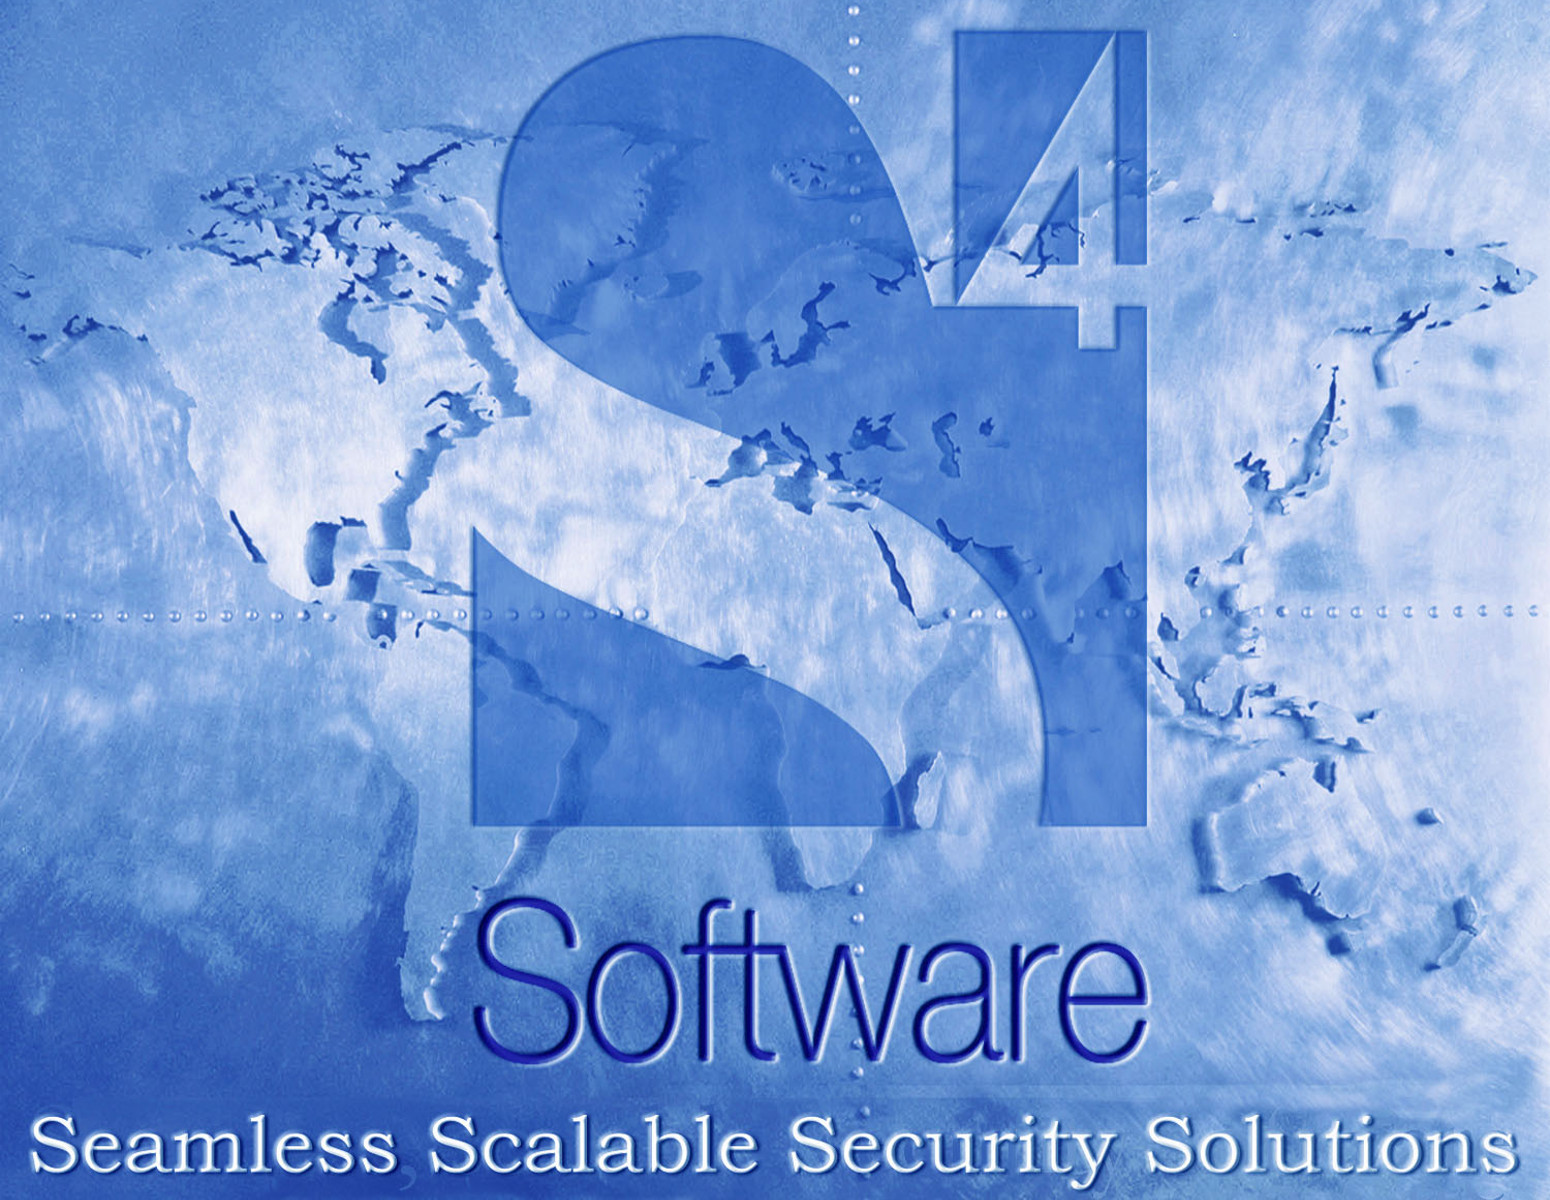 S4Software- Seamless, Scalable Security Solutions